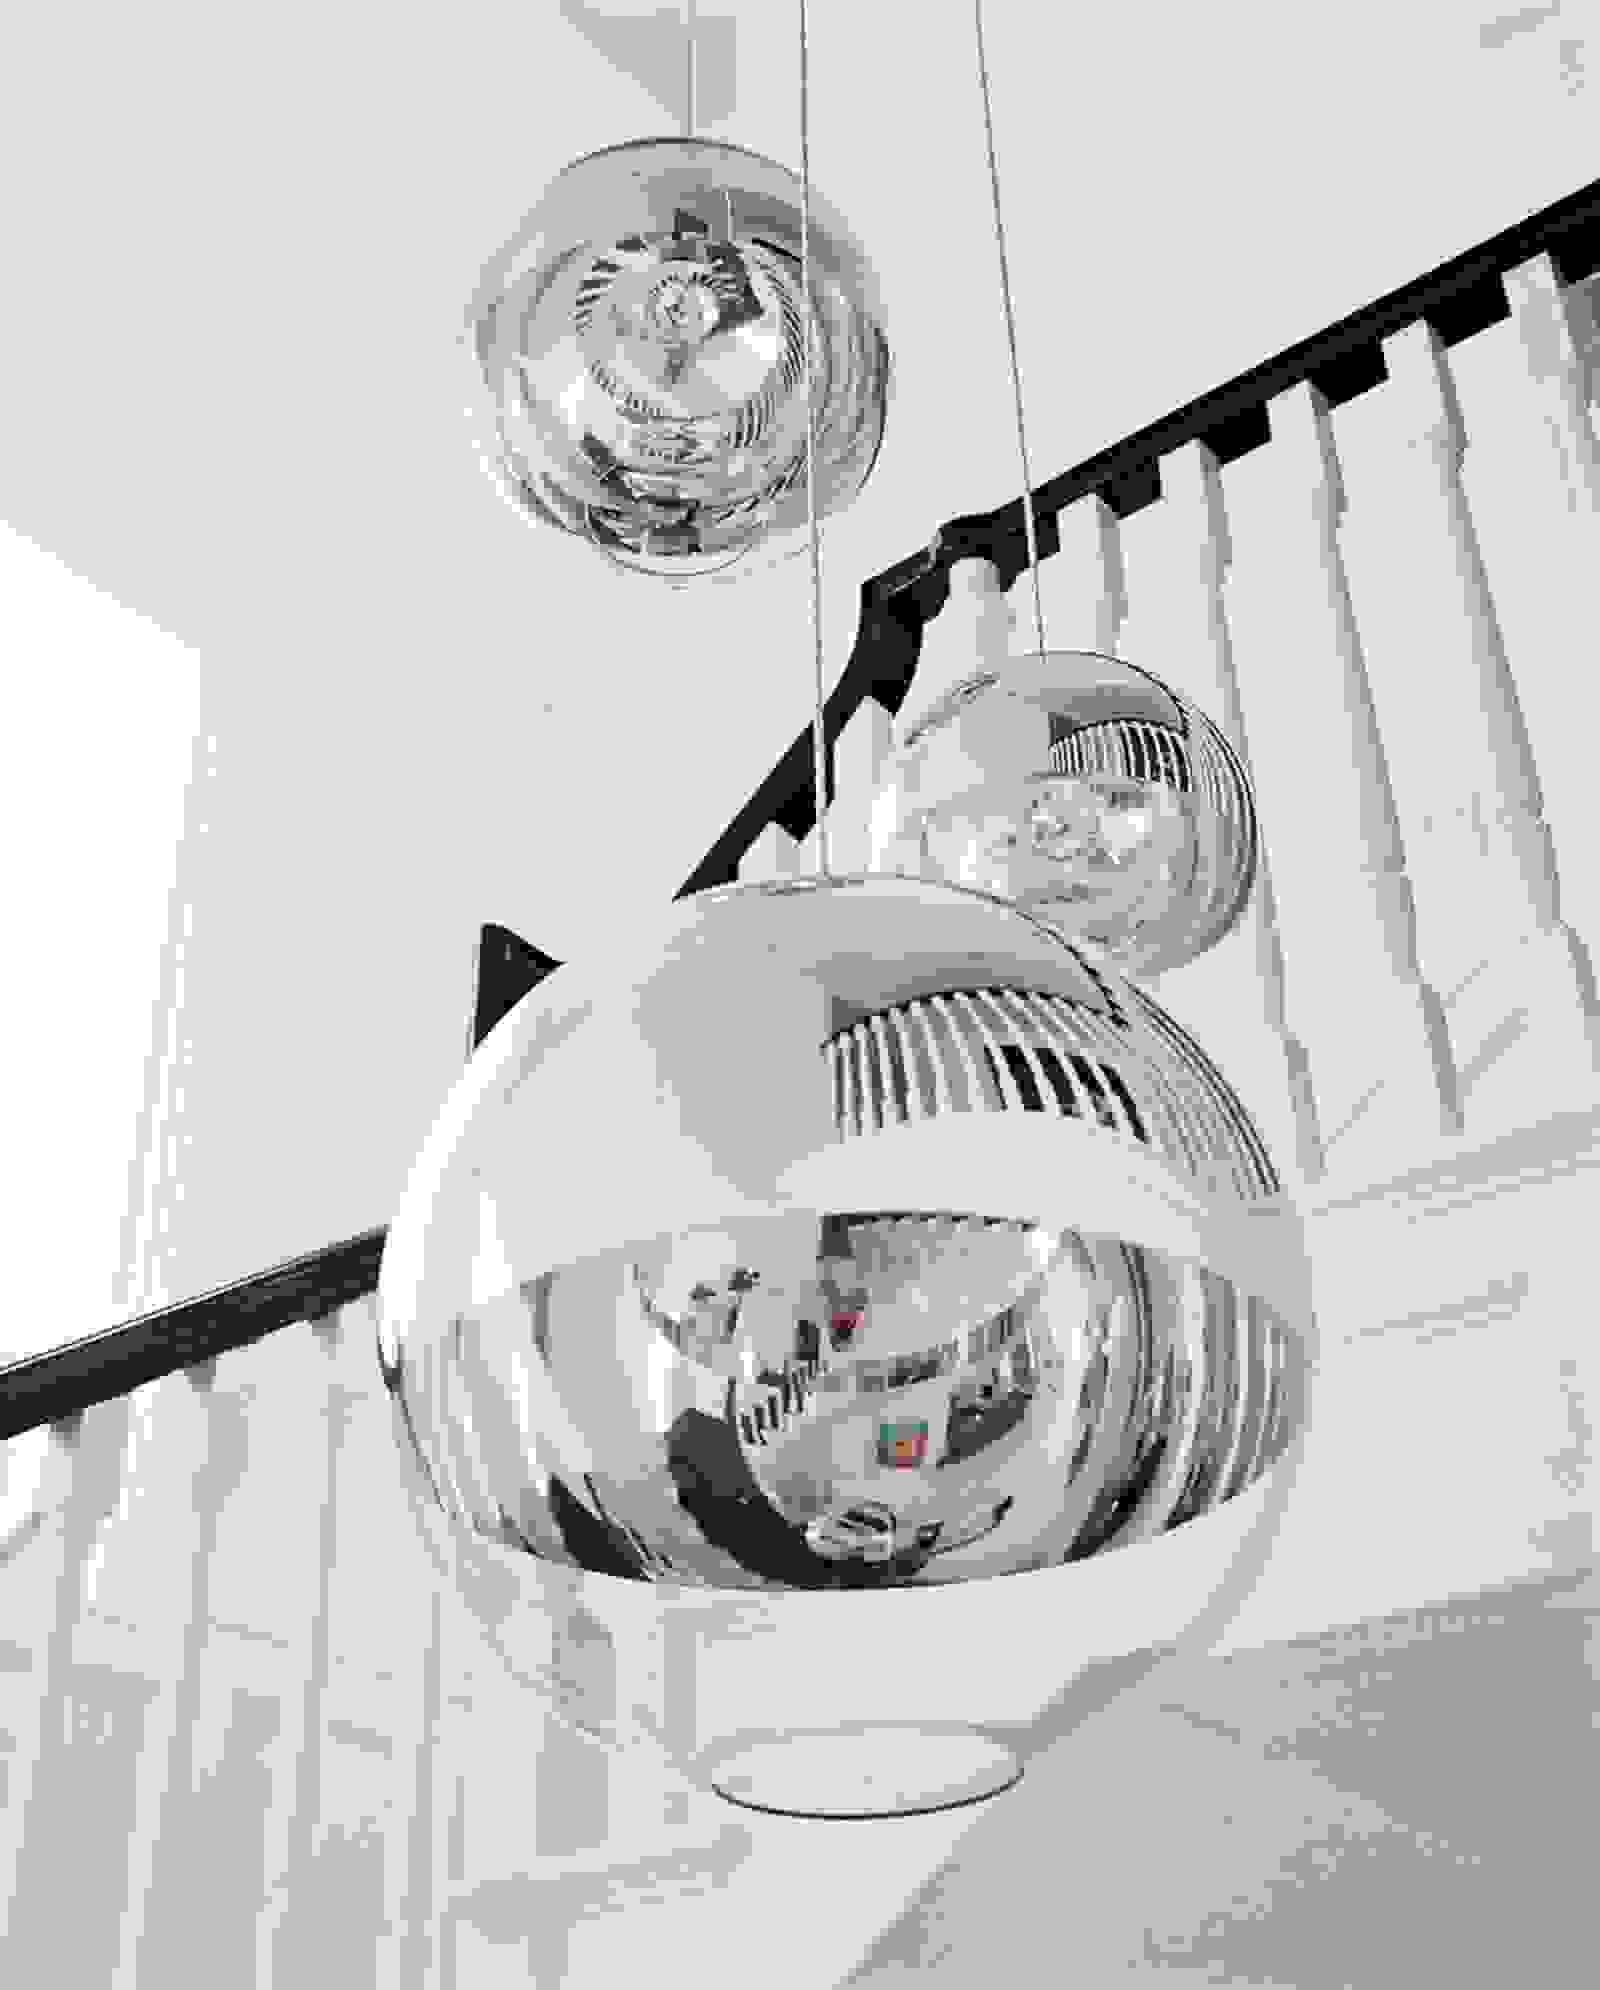 Futuristic orb chandelier by Tom Dixon | Source: vogue.com